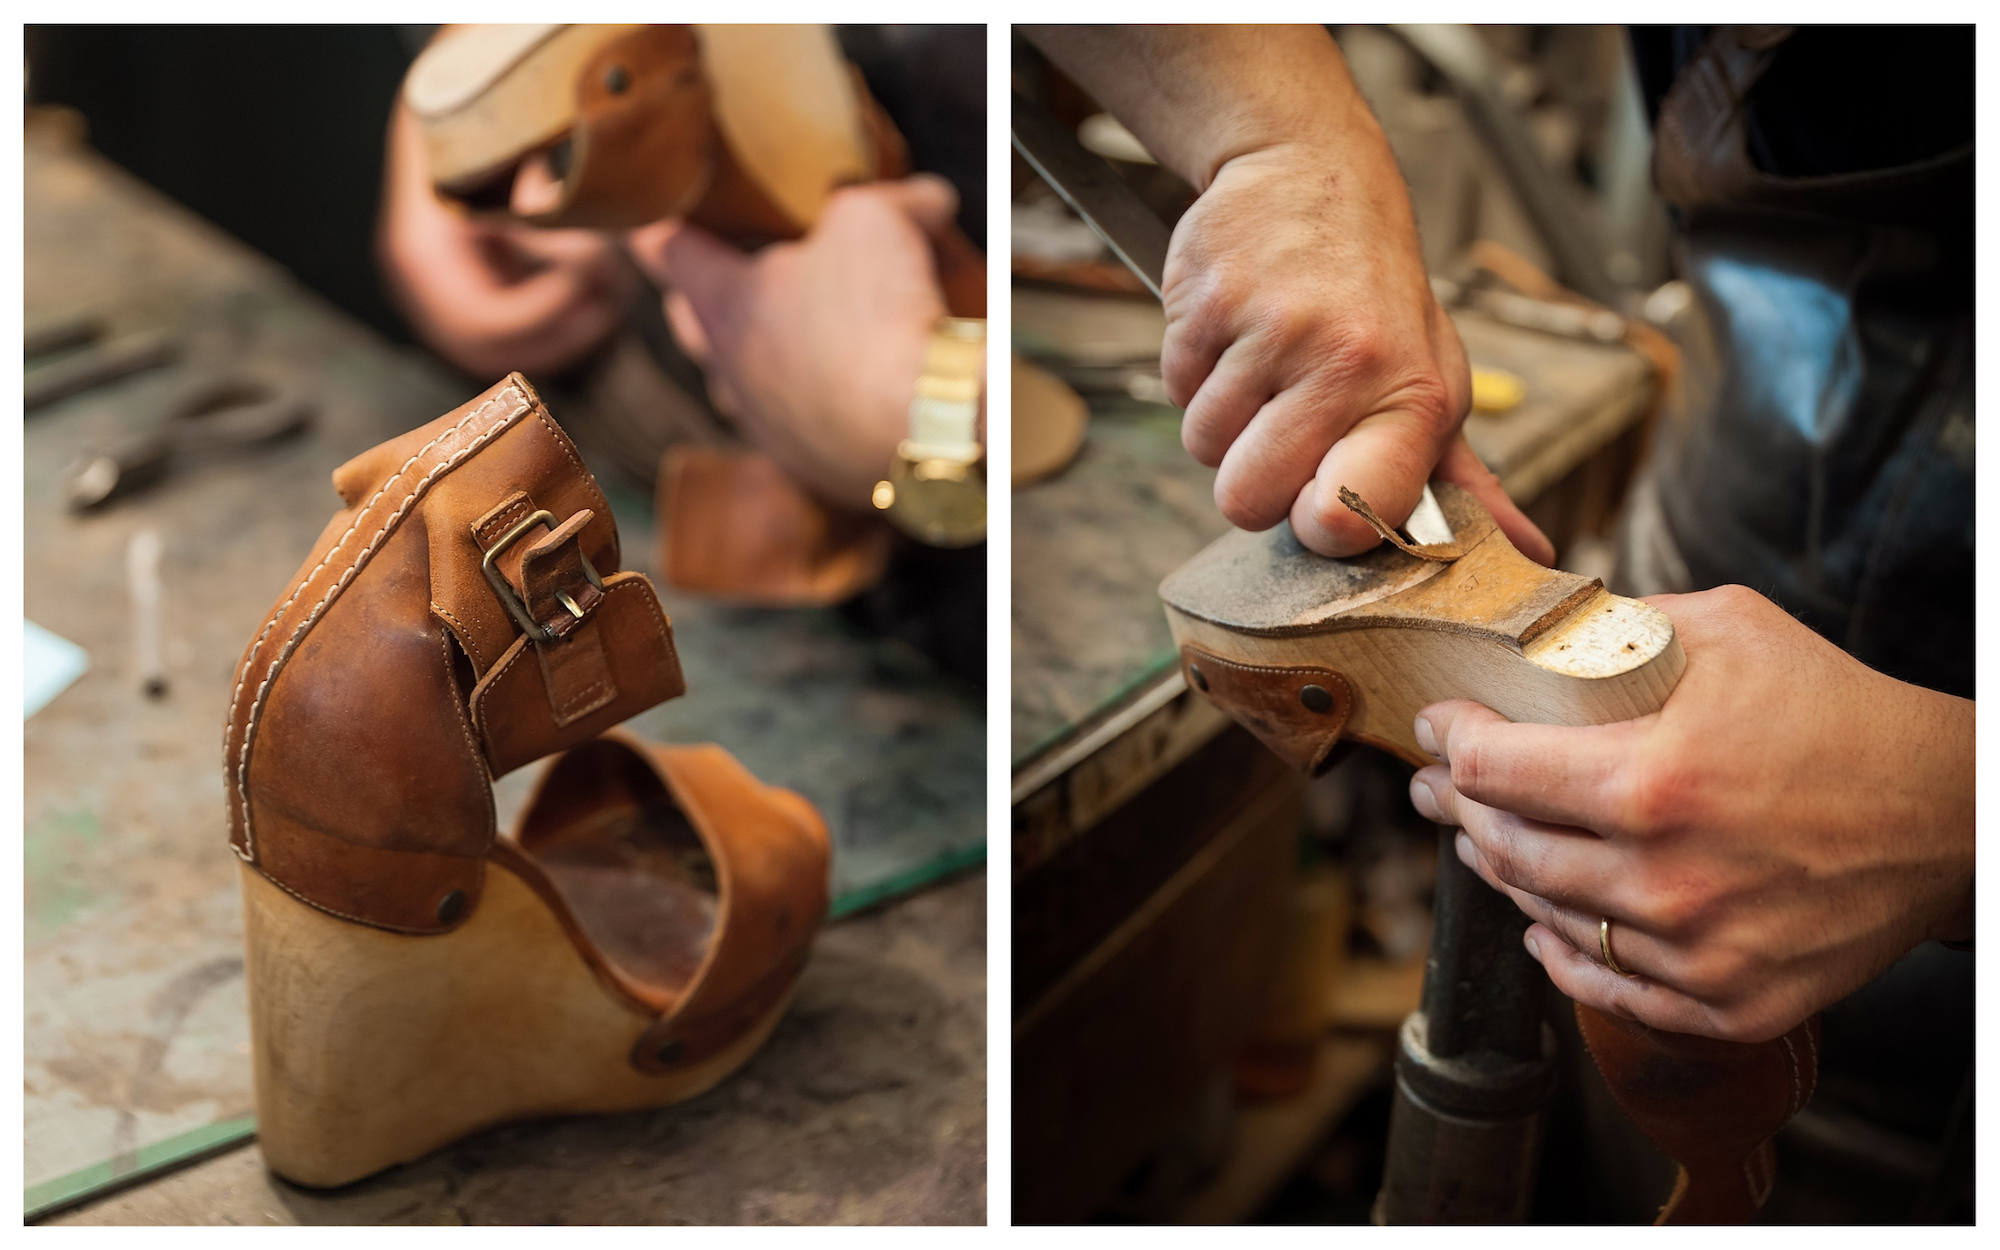 HiP Paris Blog checks out artisanal cobbler Atelier Constance in Montmartre and one of his high heeled leather espadrilles (left). Cobbler Jérôme Voisin working on the sole of a shoe (right).